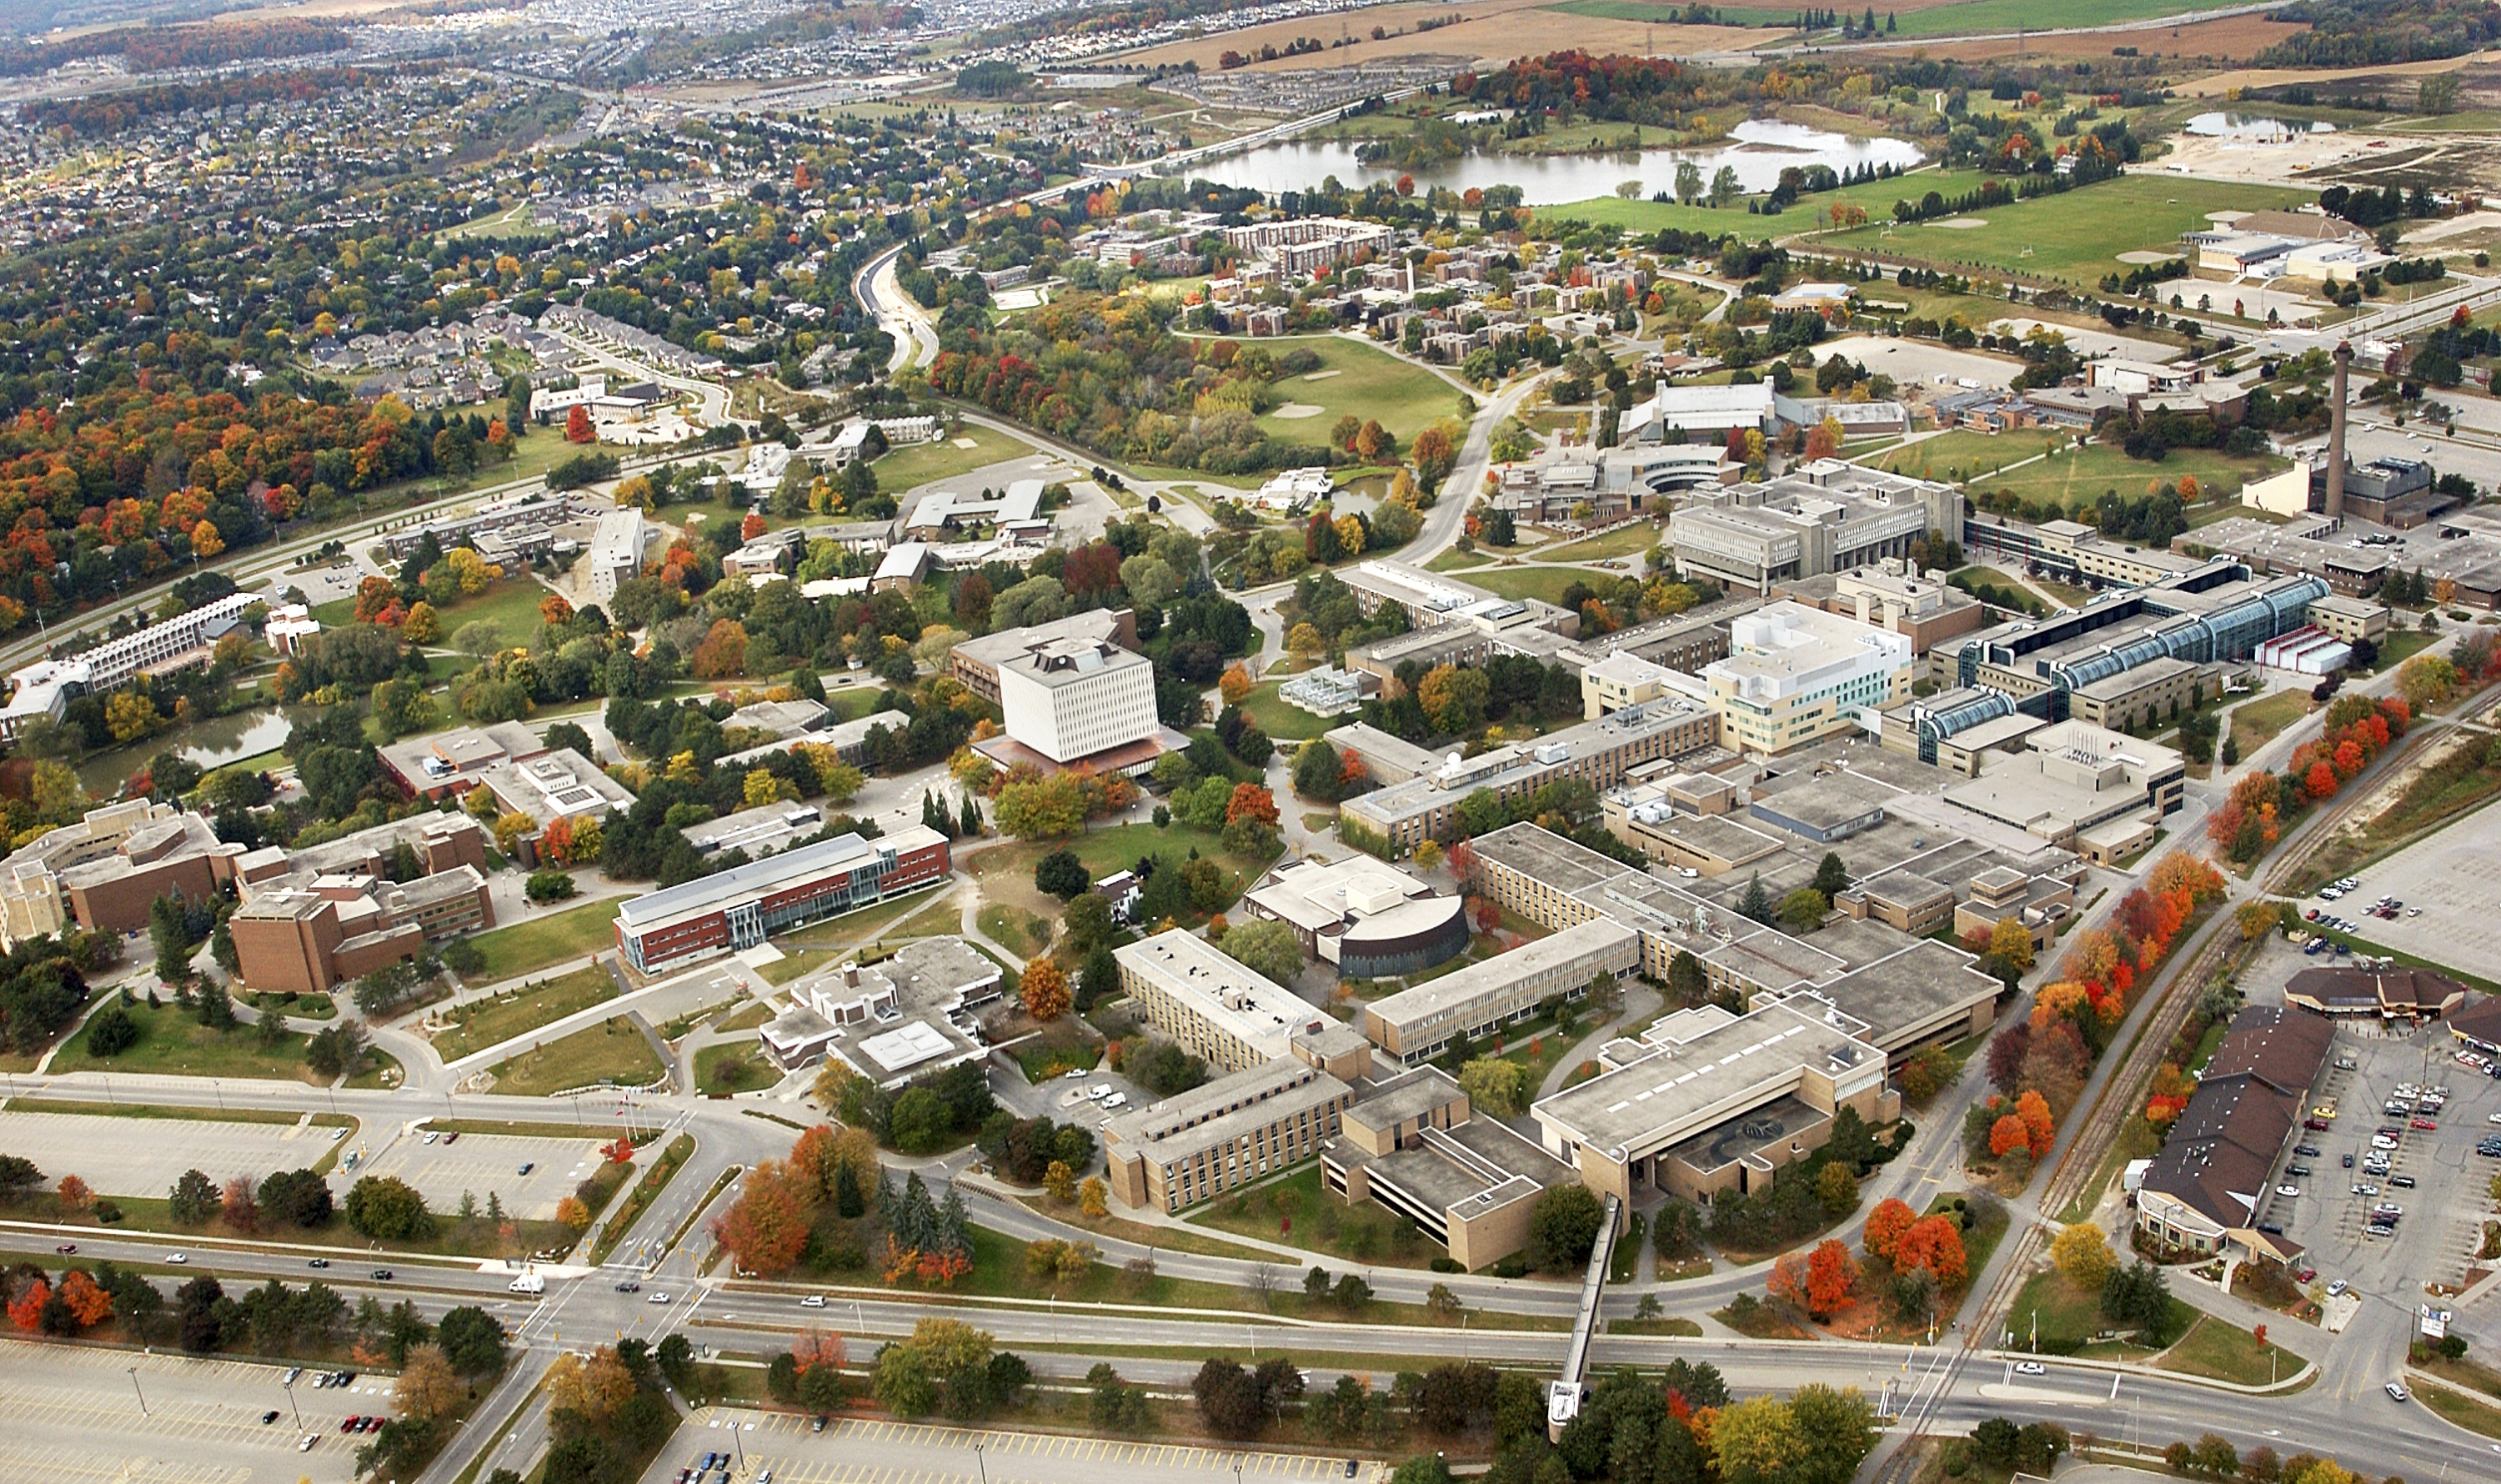 University of Waterloo Aerial Image